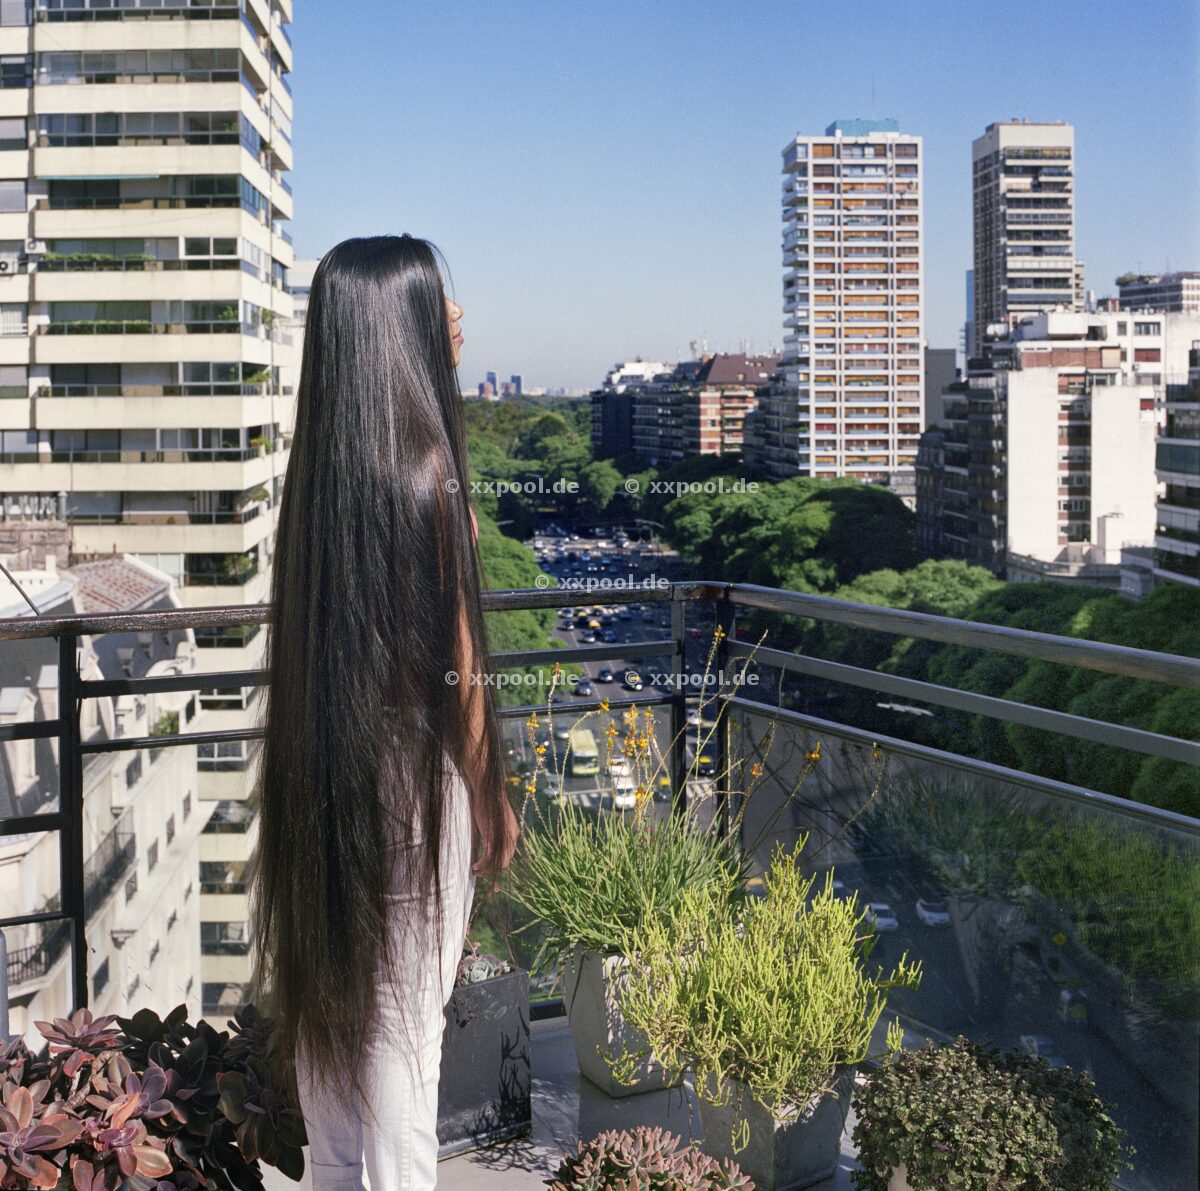 Hair, Julieta enjoys a typical Buenos Aires view for the first time. She gets a lot of attention from men when she lets her hair down on the street, so she usually braids it.   (c) Irina Werning / Agentur Focus